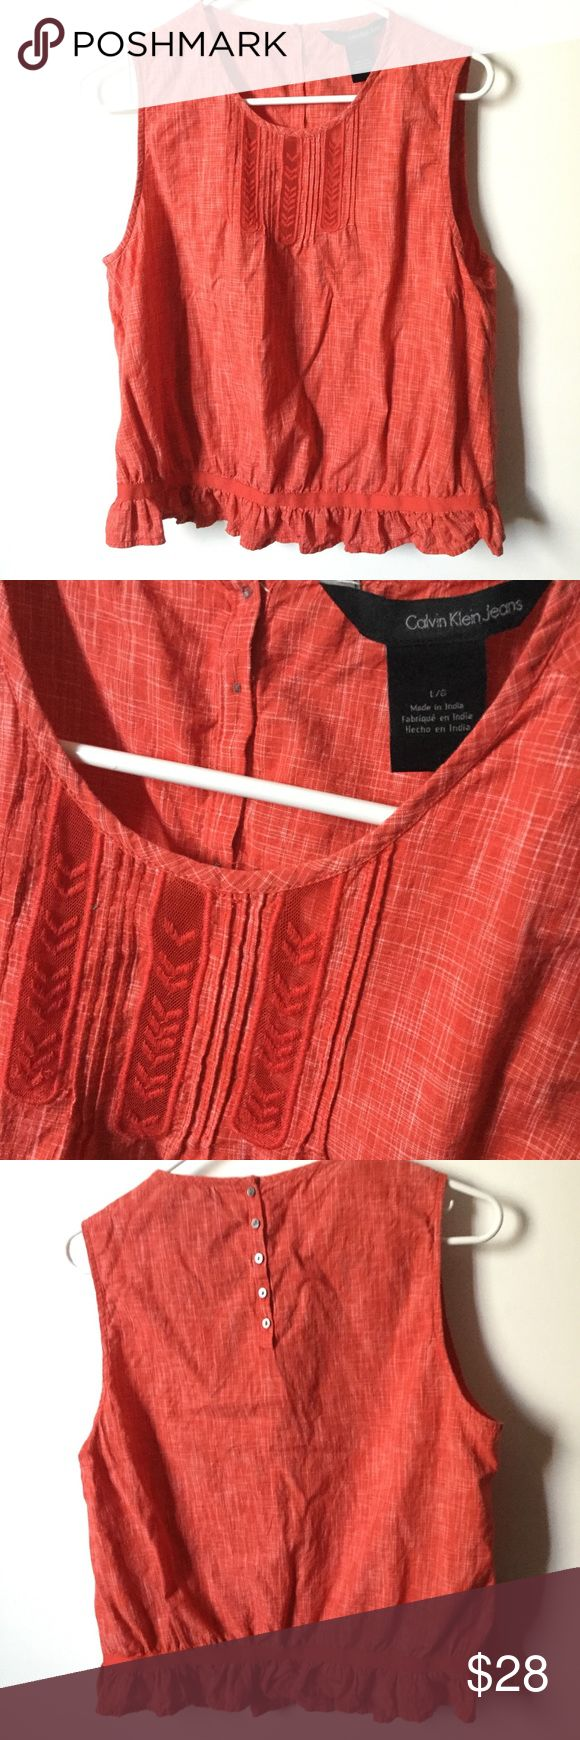 Calvin Klein Jeans Blouse Like condition, some loose thread on embroidery. Calvin Klein Tops